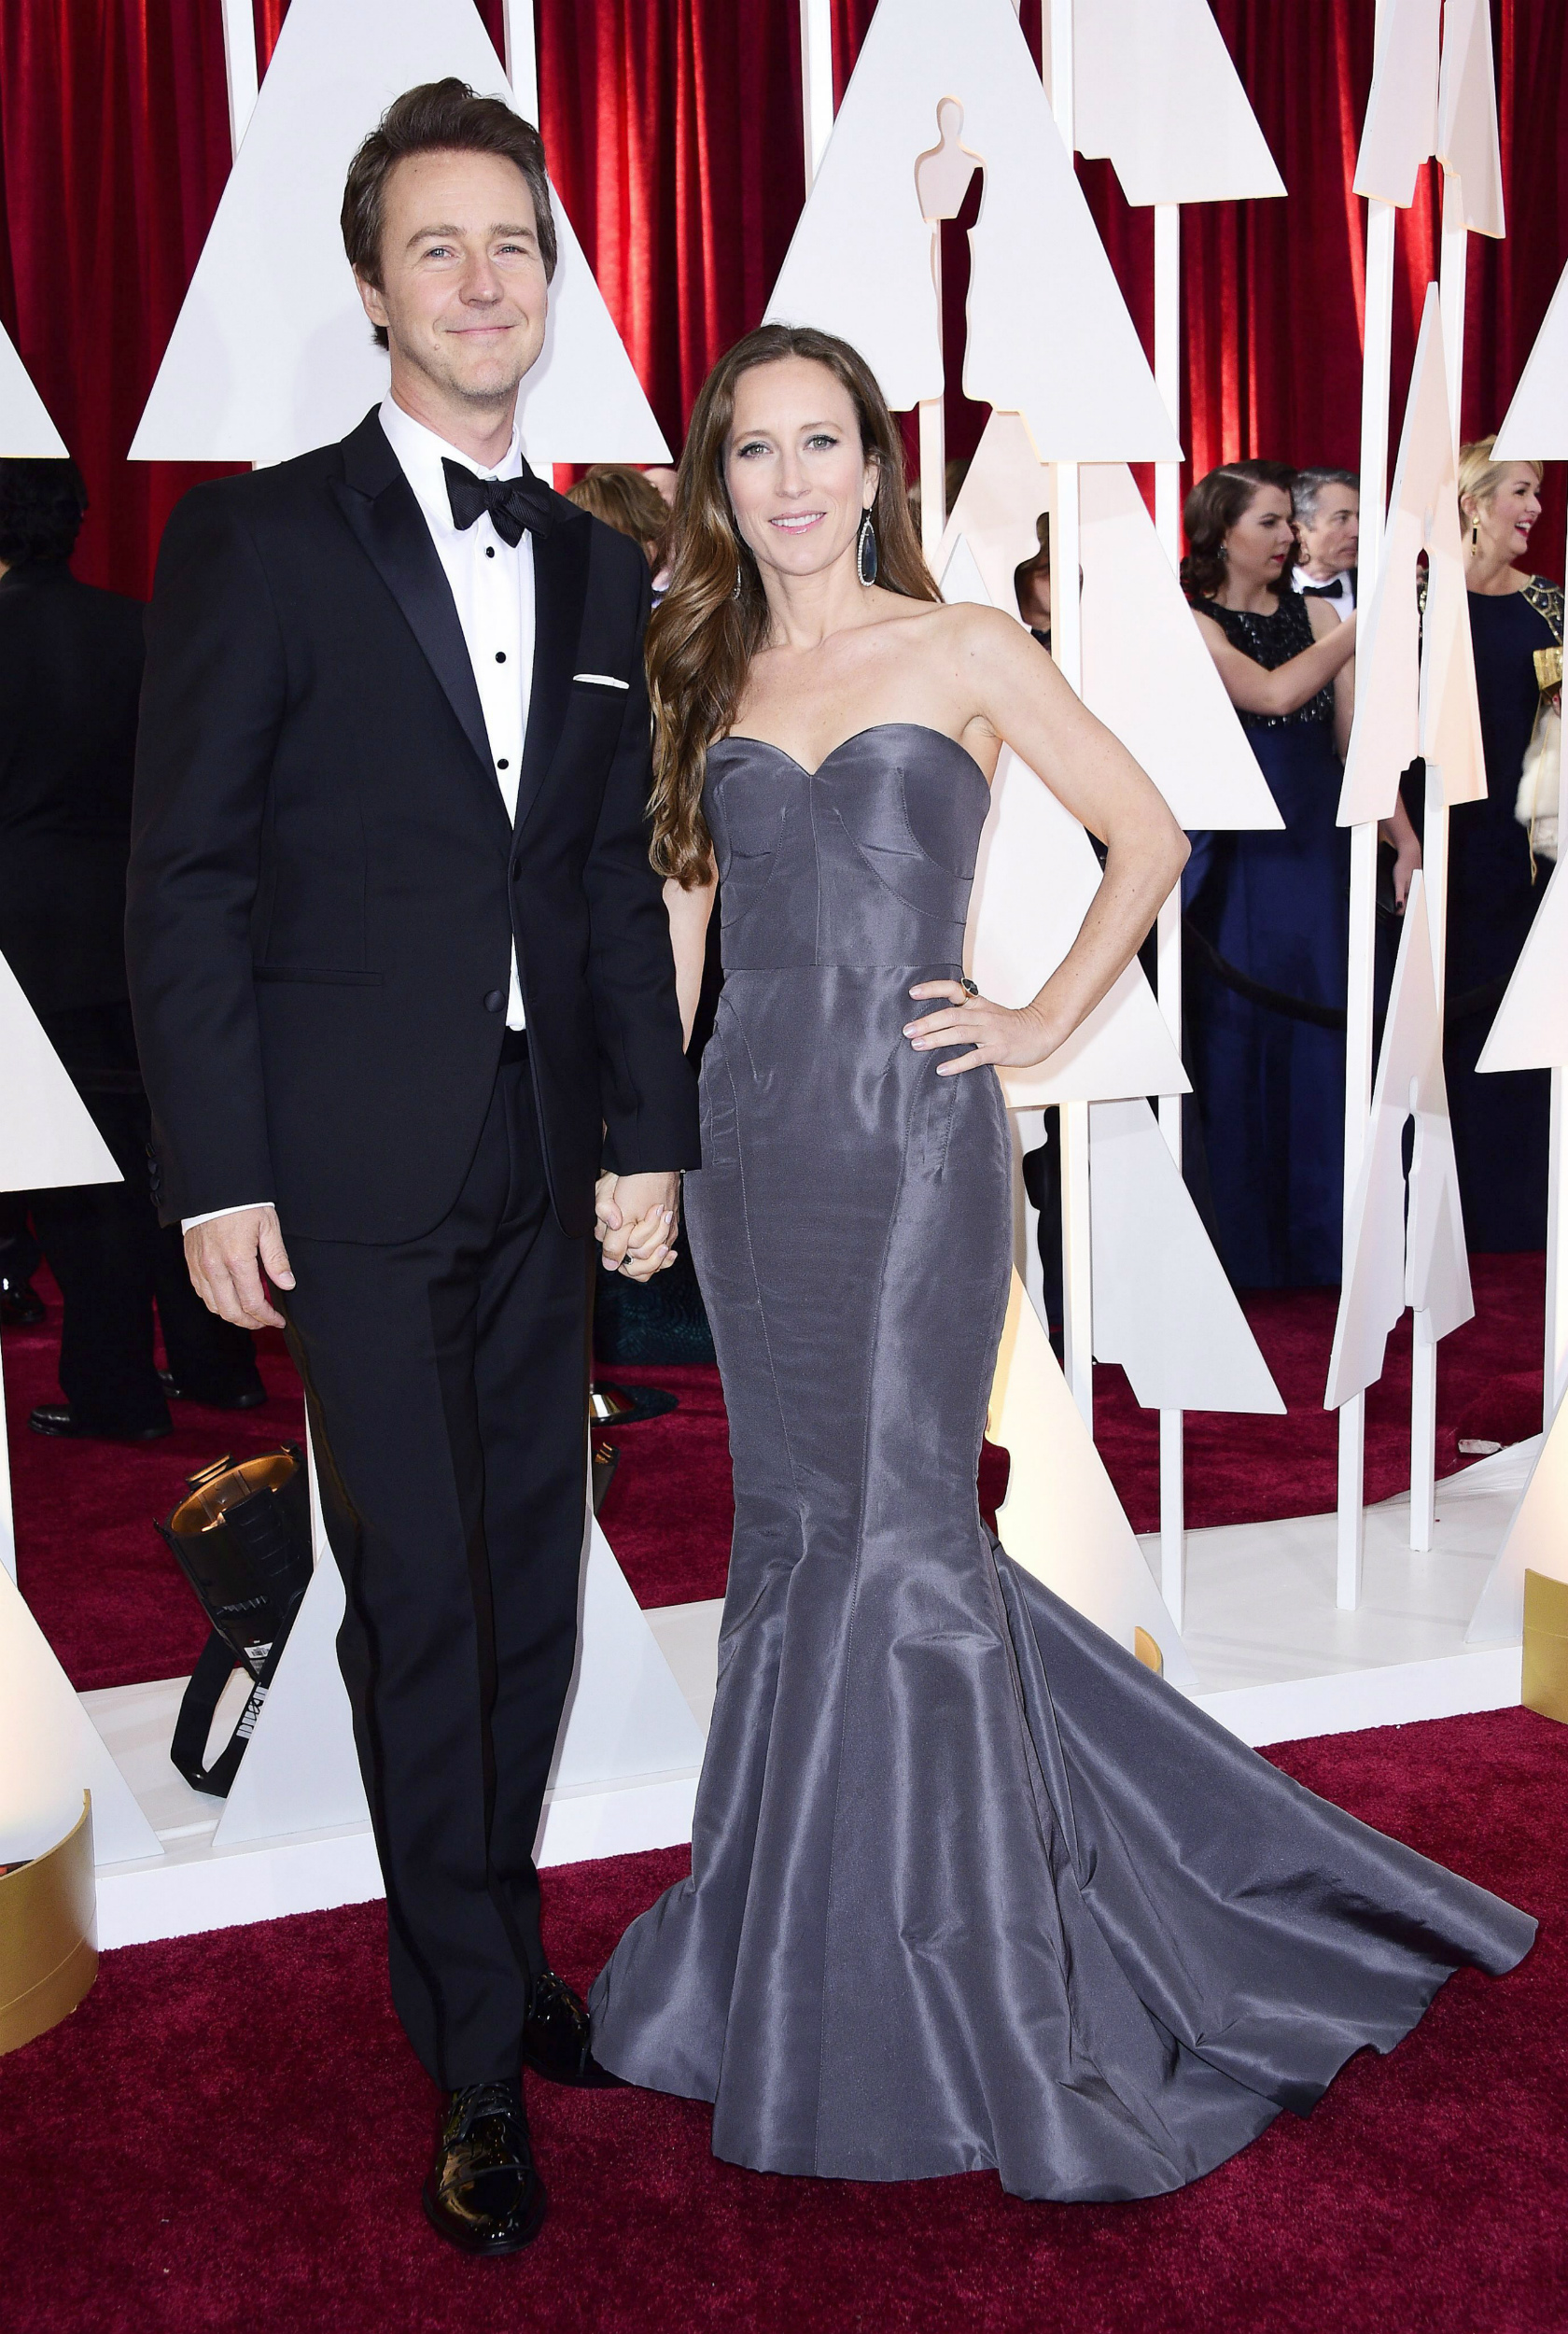 Edward Norton con su esposa en la 87 ceremonia de la Academy Awards ceremony en el Dolby Theatre de Hollywood, California, en 2015. EFE/EPA/PAUL BUCK